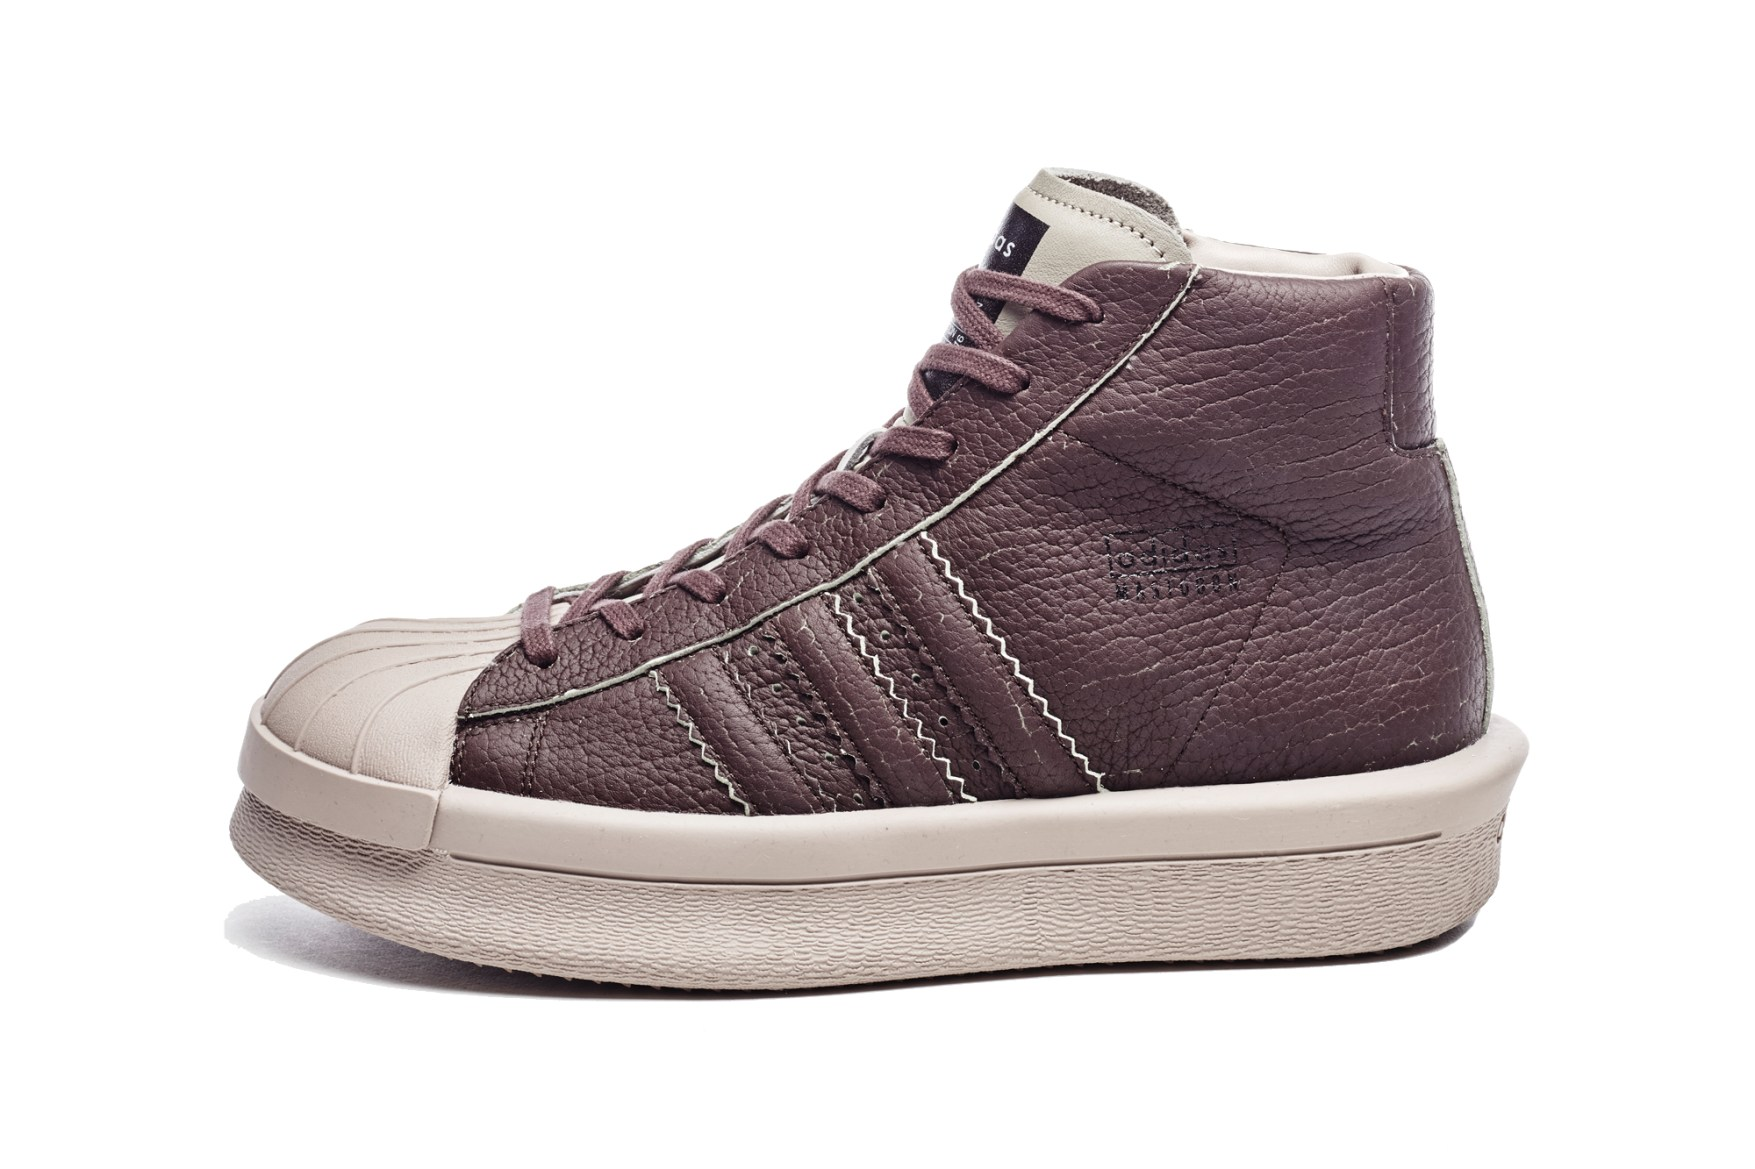 adidas rick owens mastodon collection in blue maroon white and grey hypebeast. Black Bedroom Furniture Sets. Home Design Ideas